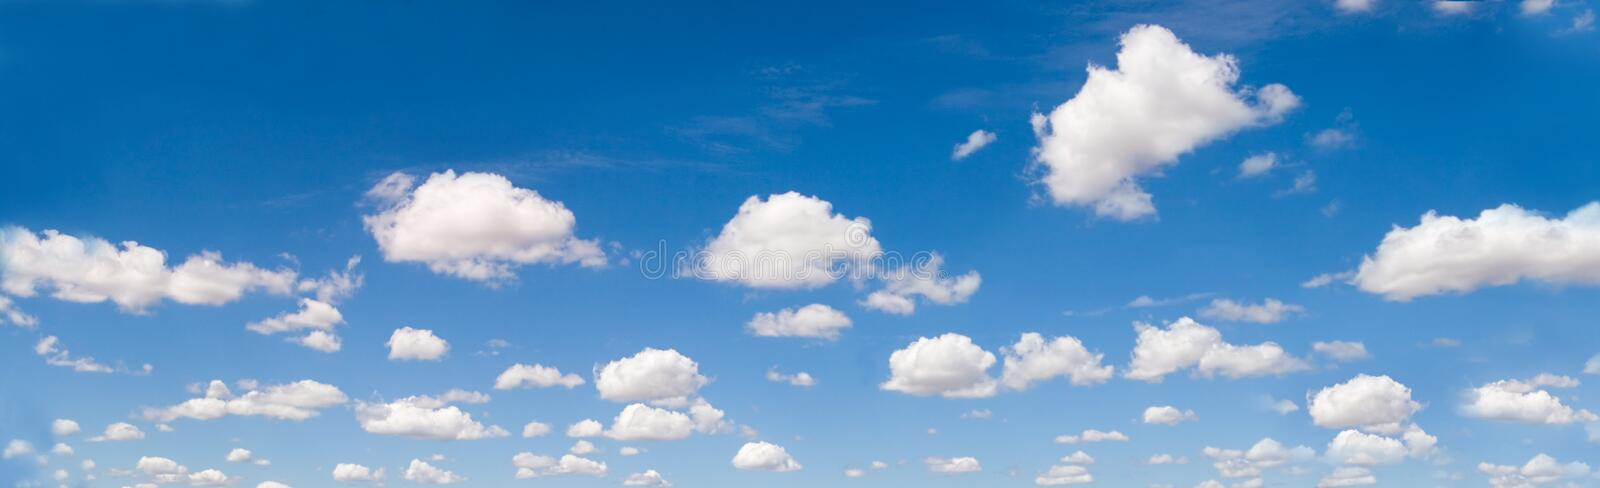 Panorama de Cloudscape fotografia de stock royalty free